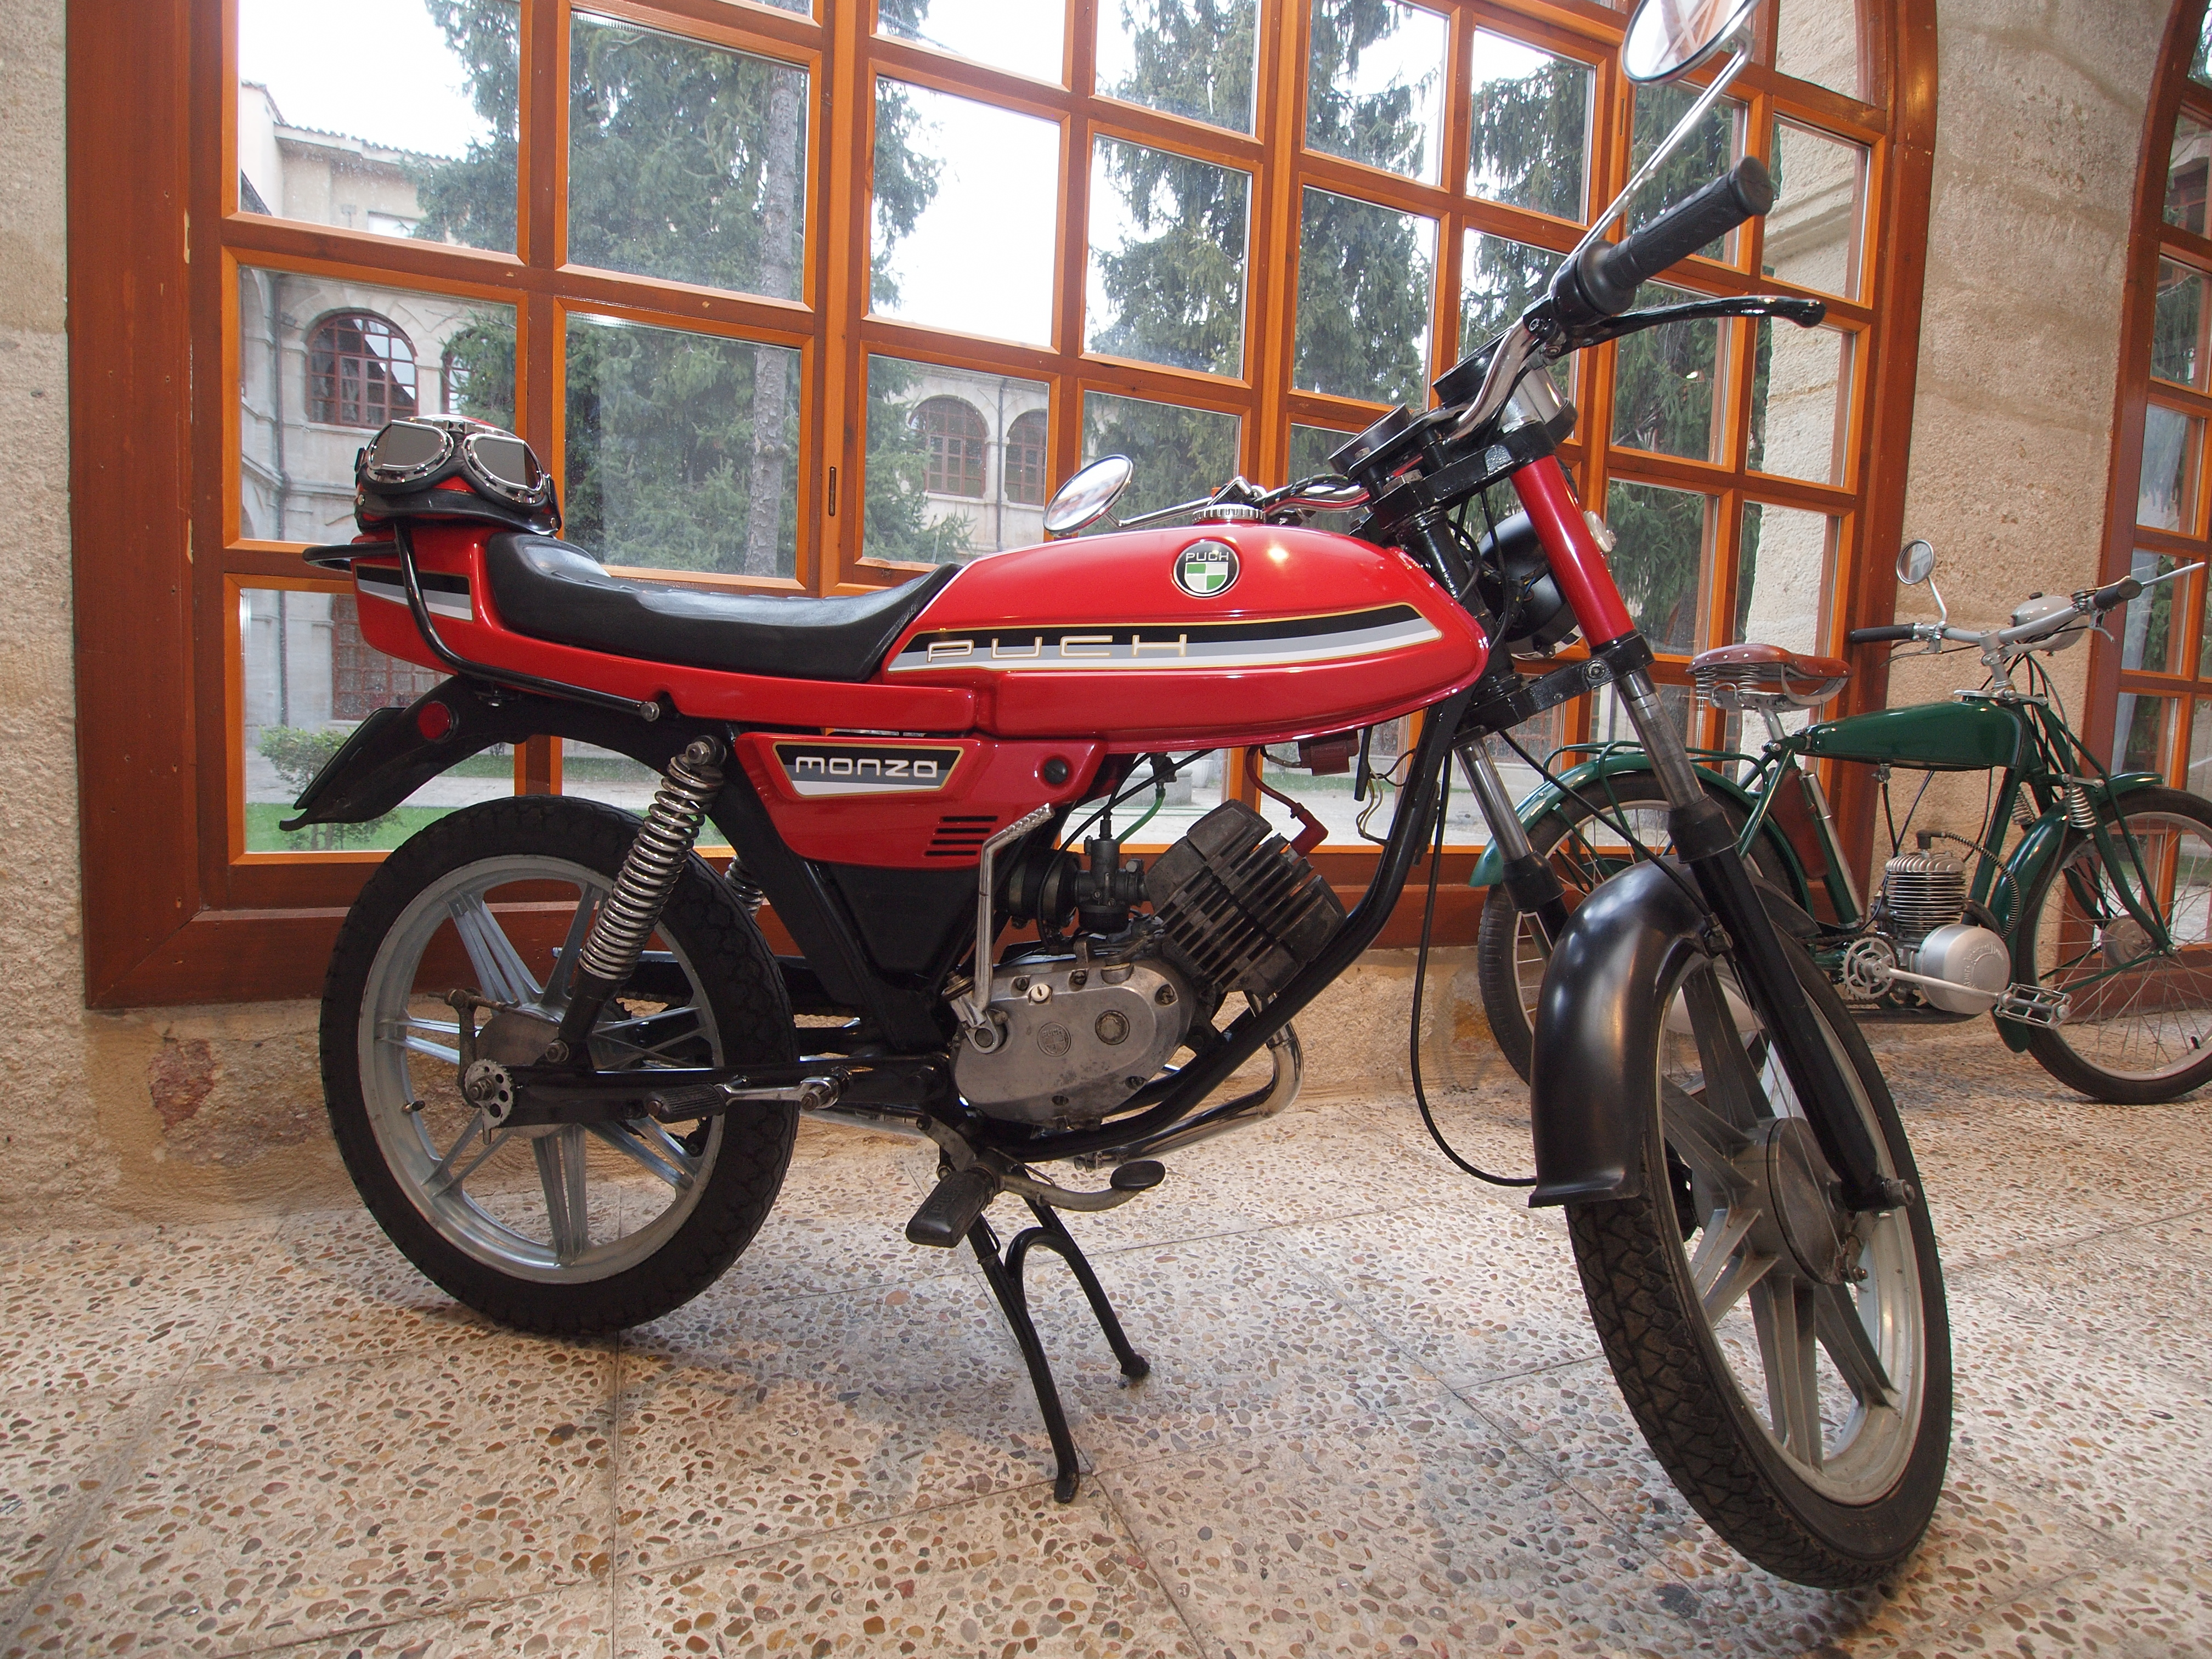 Puch monza photo - 8